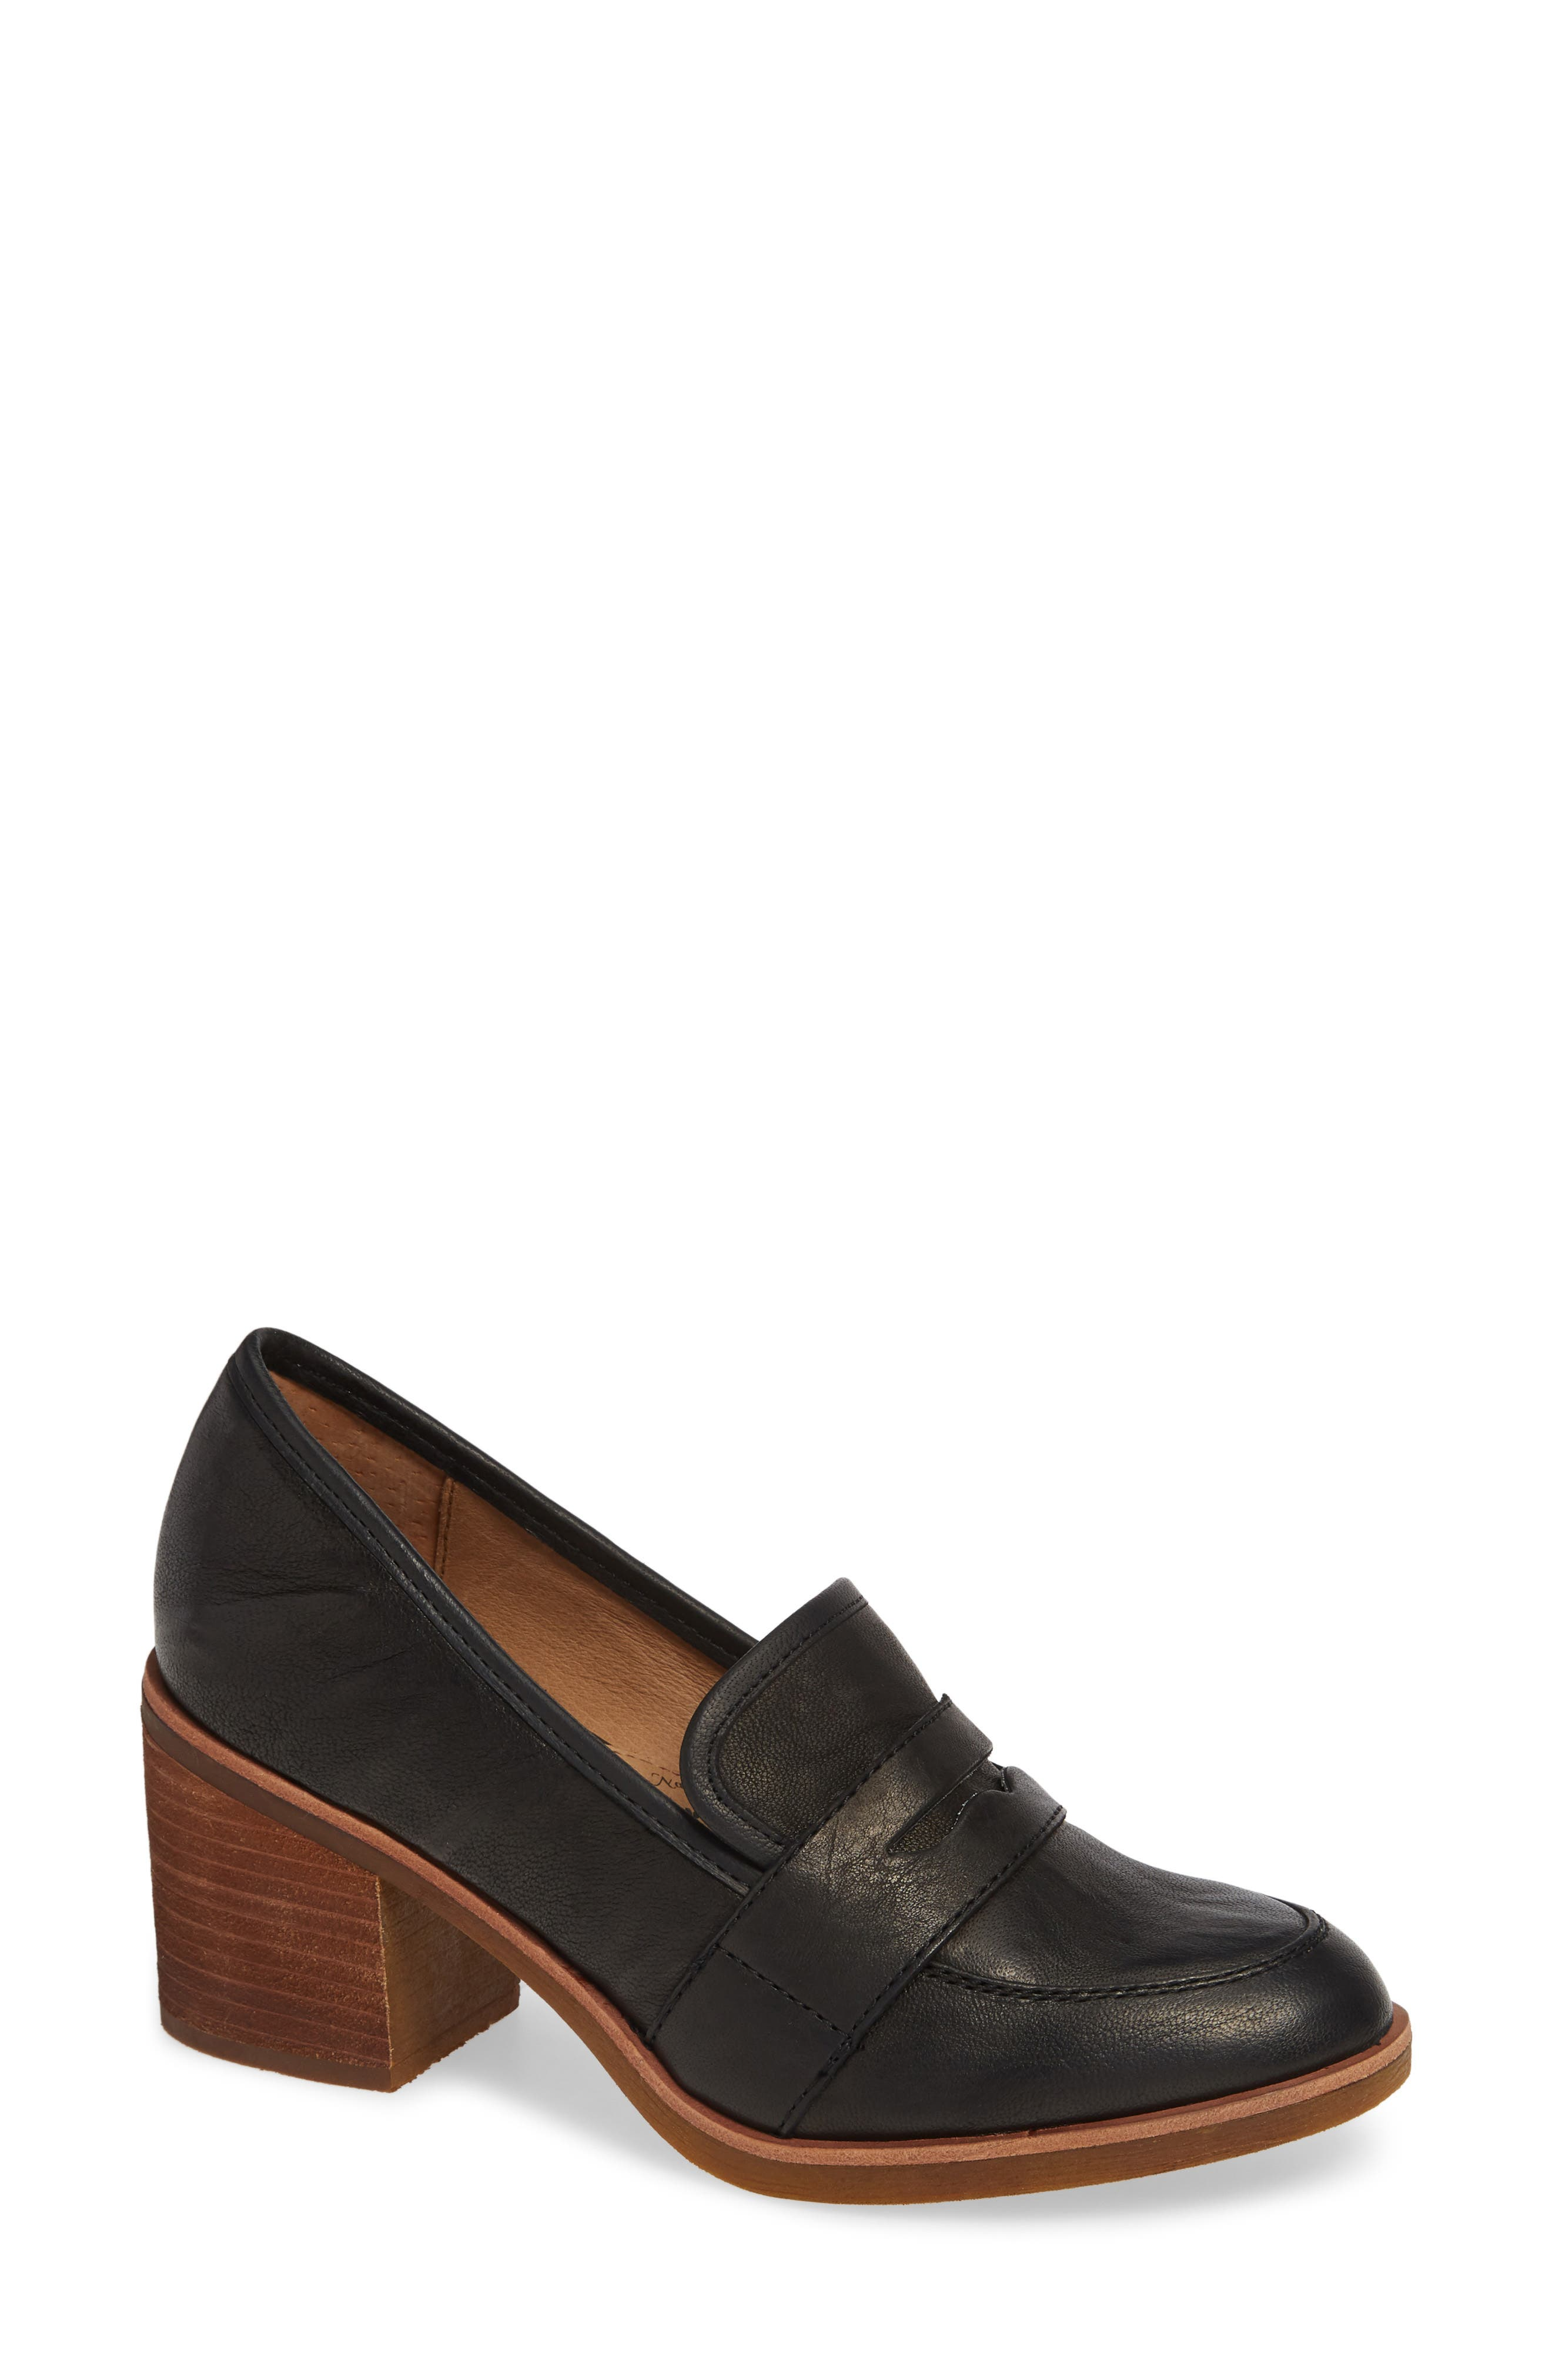 Sophia Loafer Pump,                             Main thumbnail 1, color,                             BLACK LEATHER